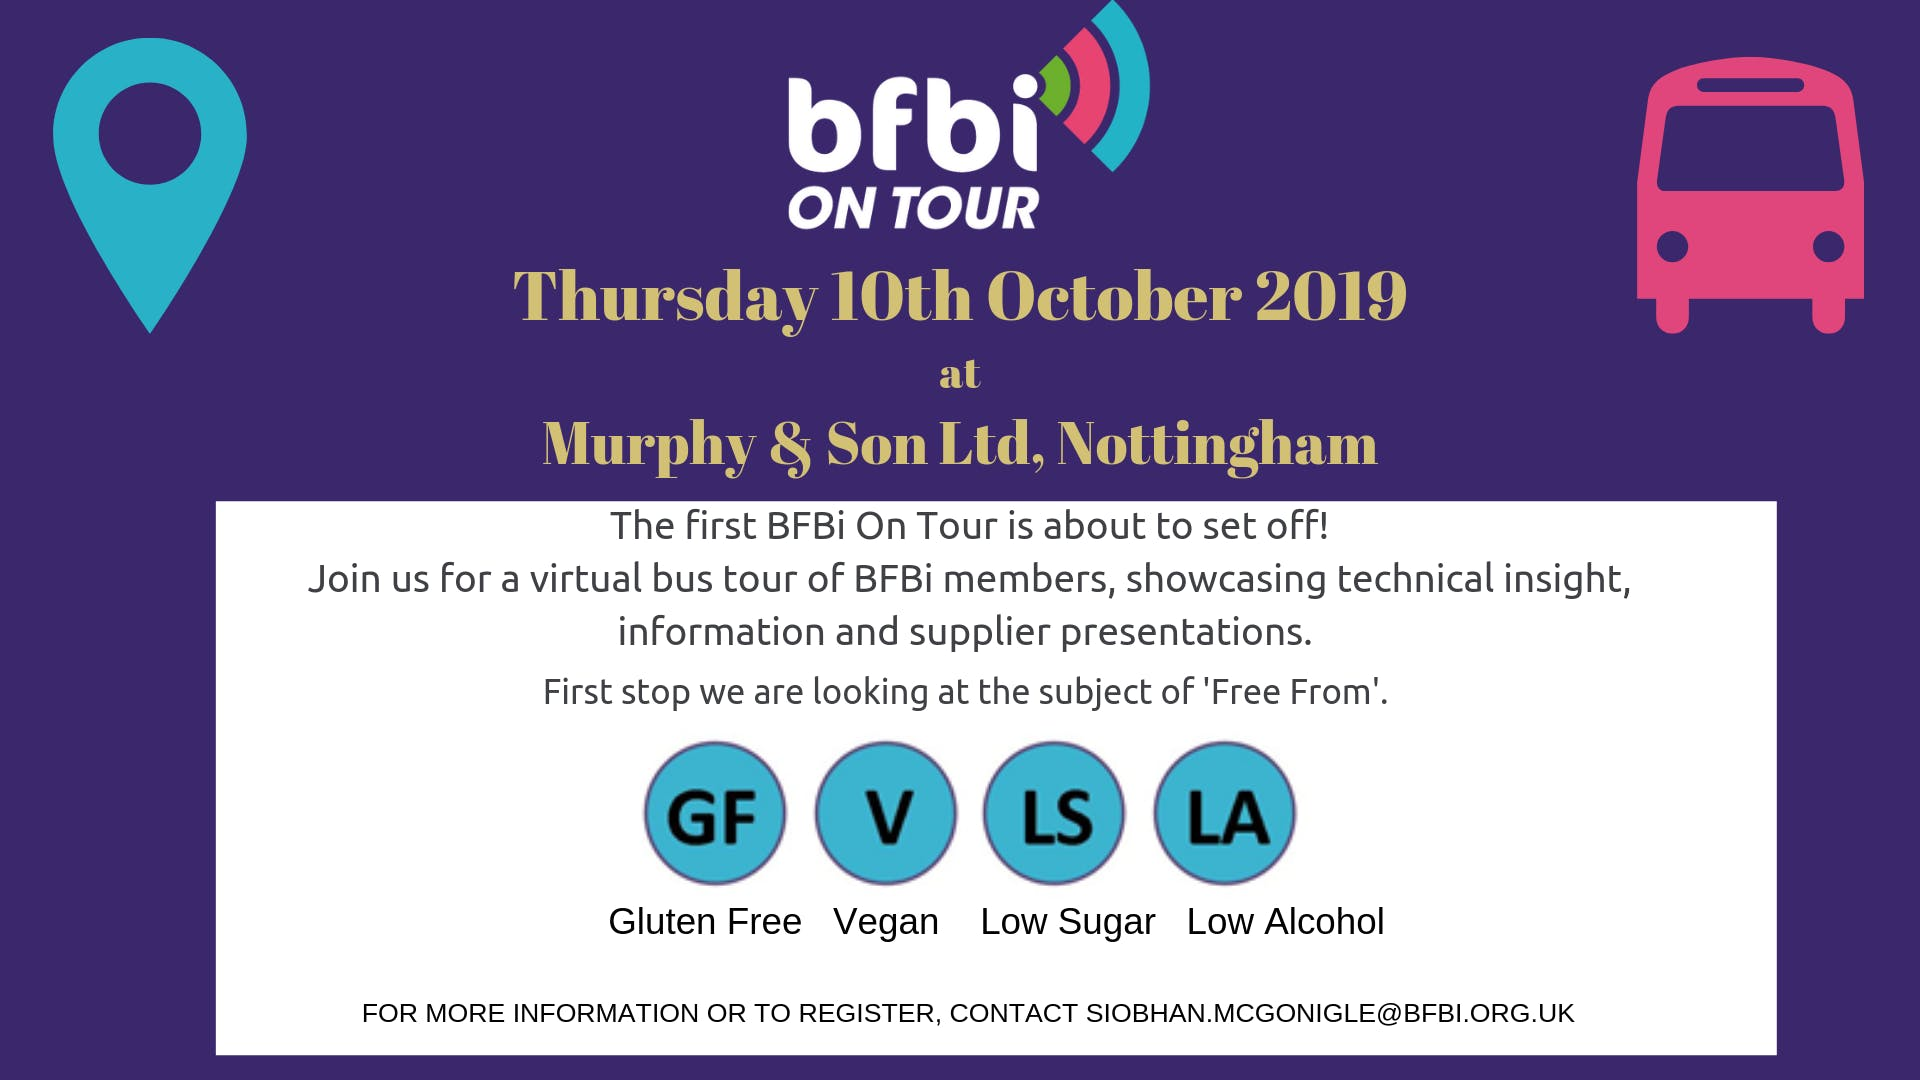 BFBi On Tour - 'Free From'